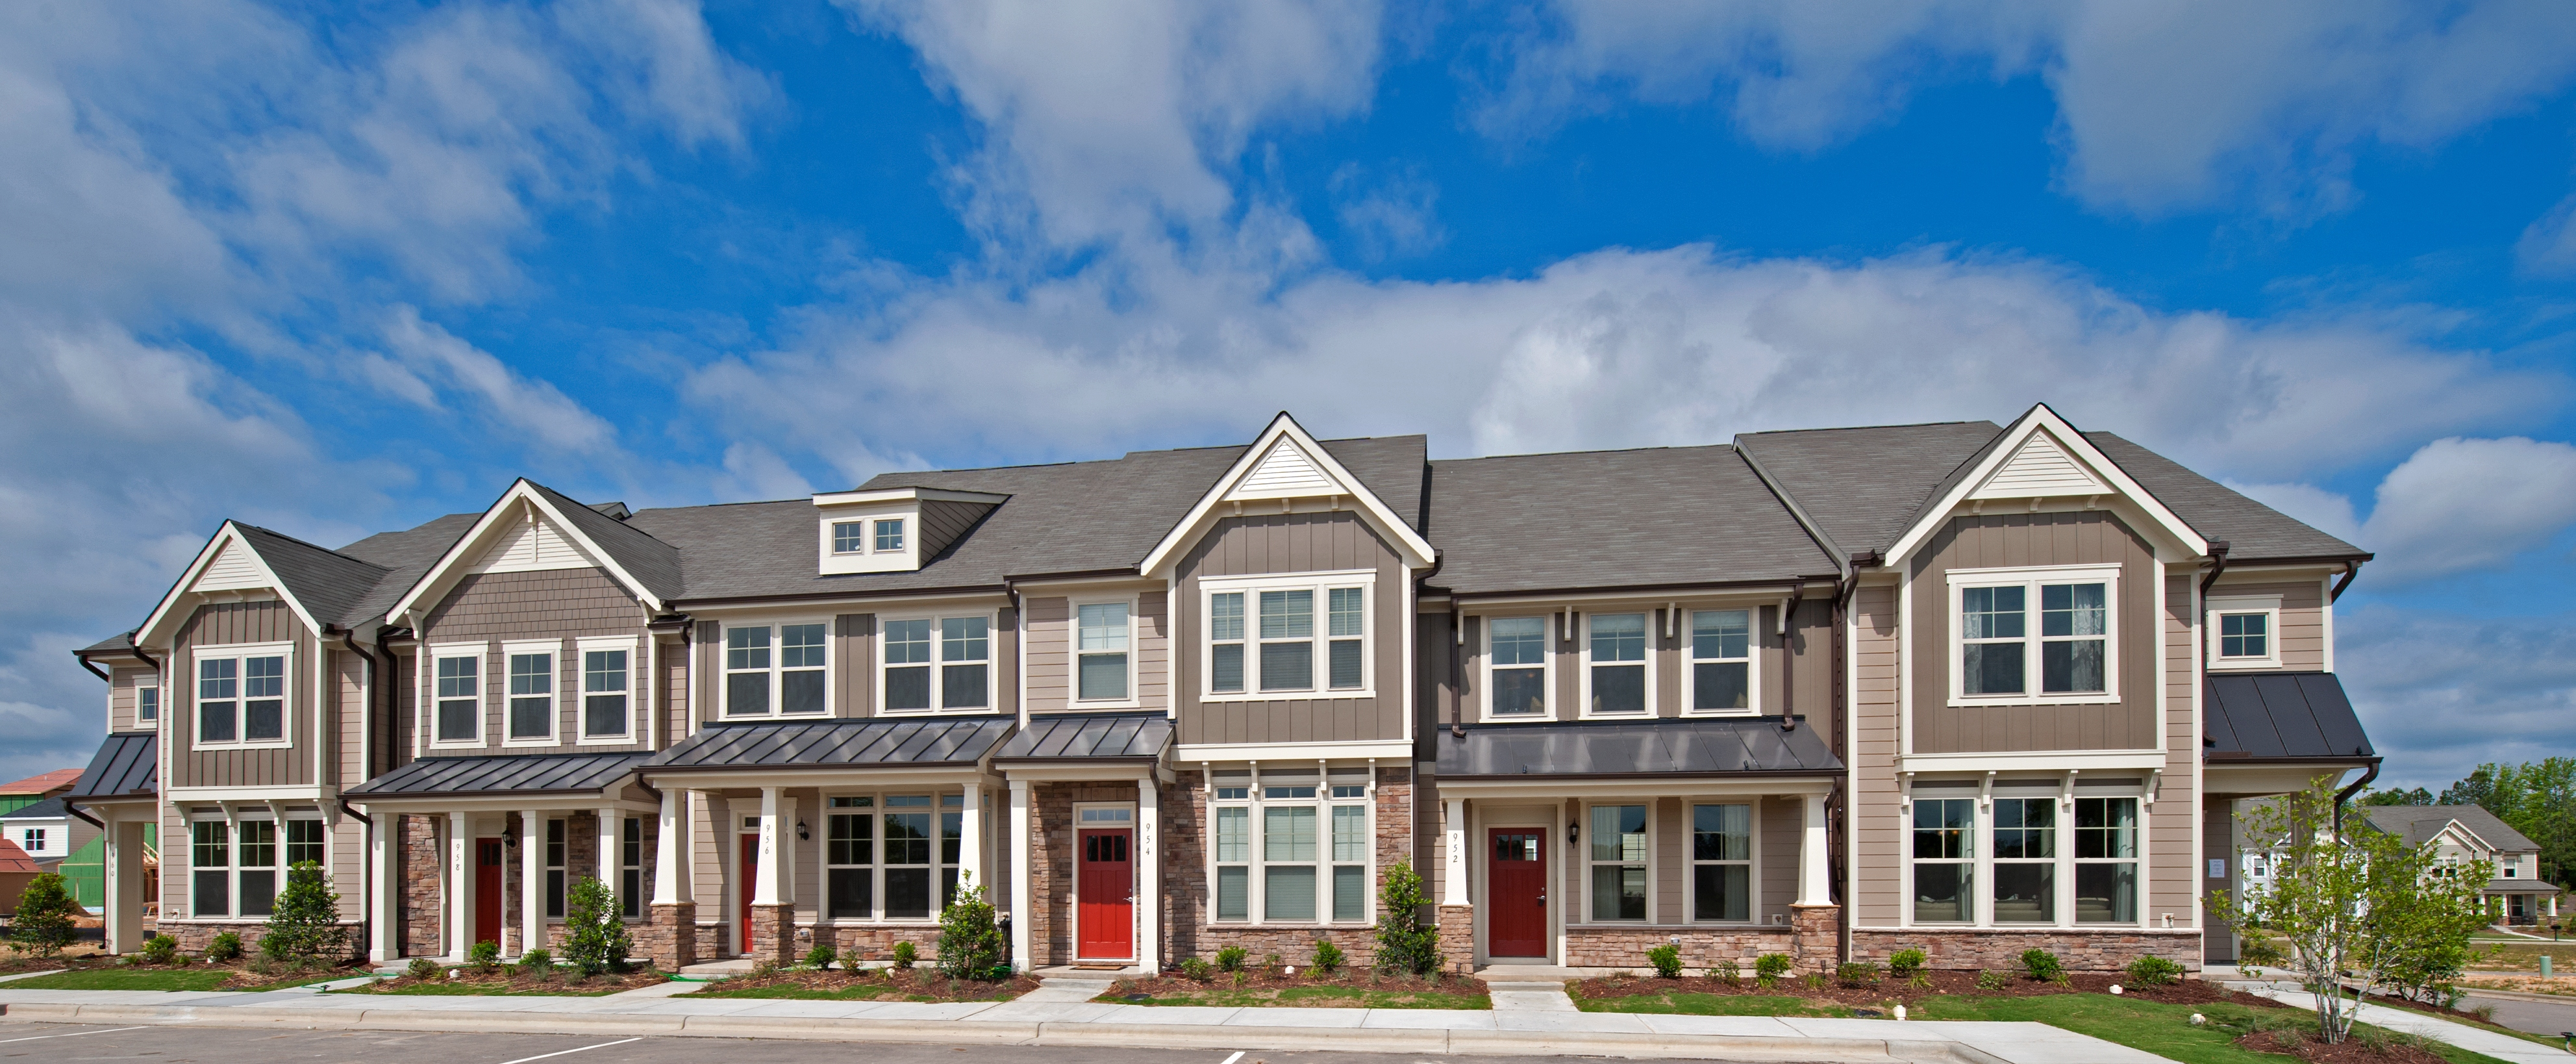 new townhome neighborhood coming to rutland in hanover county hhhunt communities blog. Black Bedroom Furniture Sets. Home Design Ideas